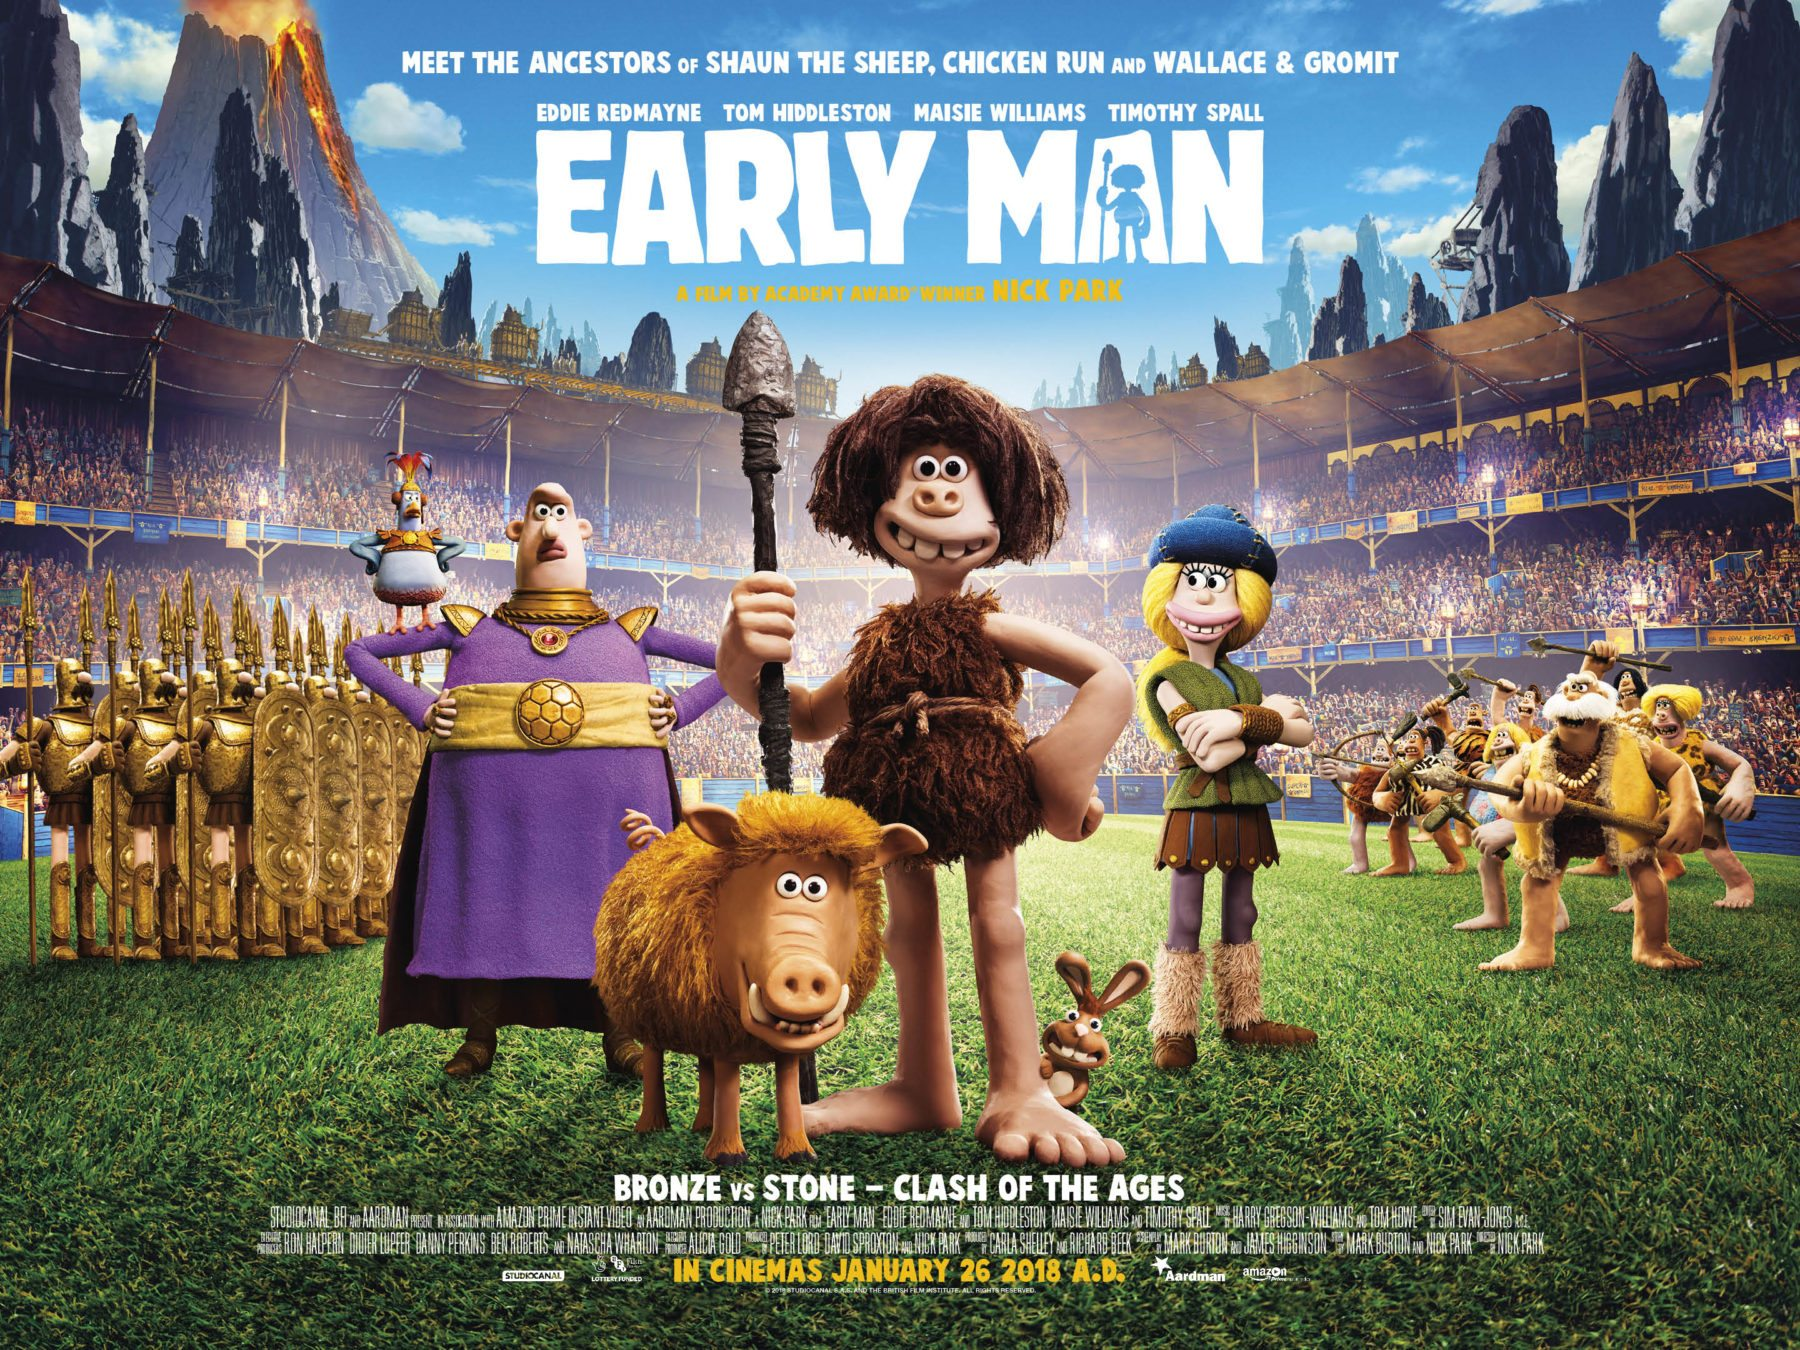 The Shack Full Movie Online Free >> Aardman's Early Man gets a new poster and trailer